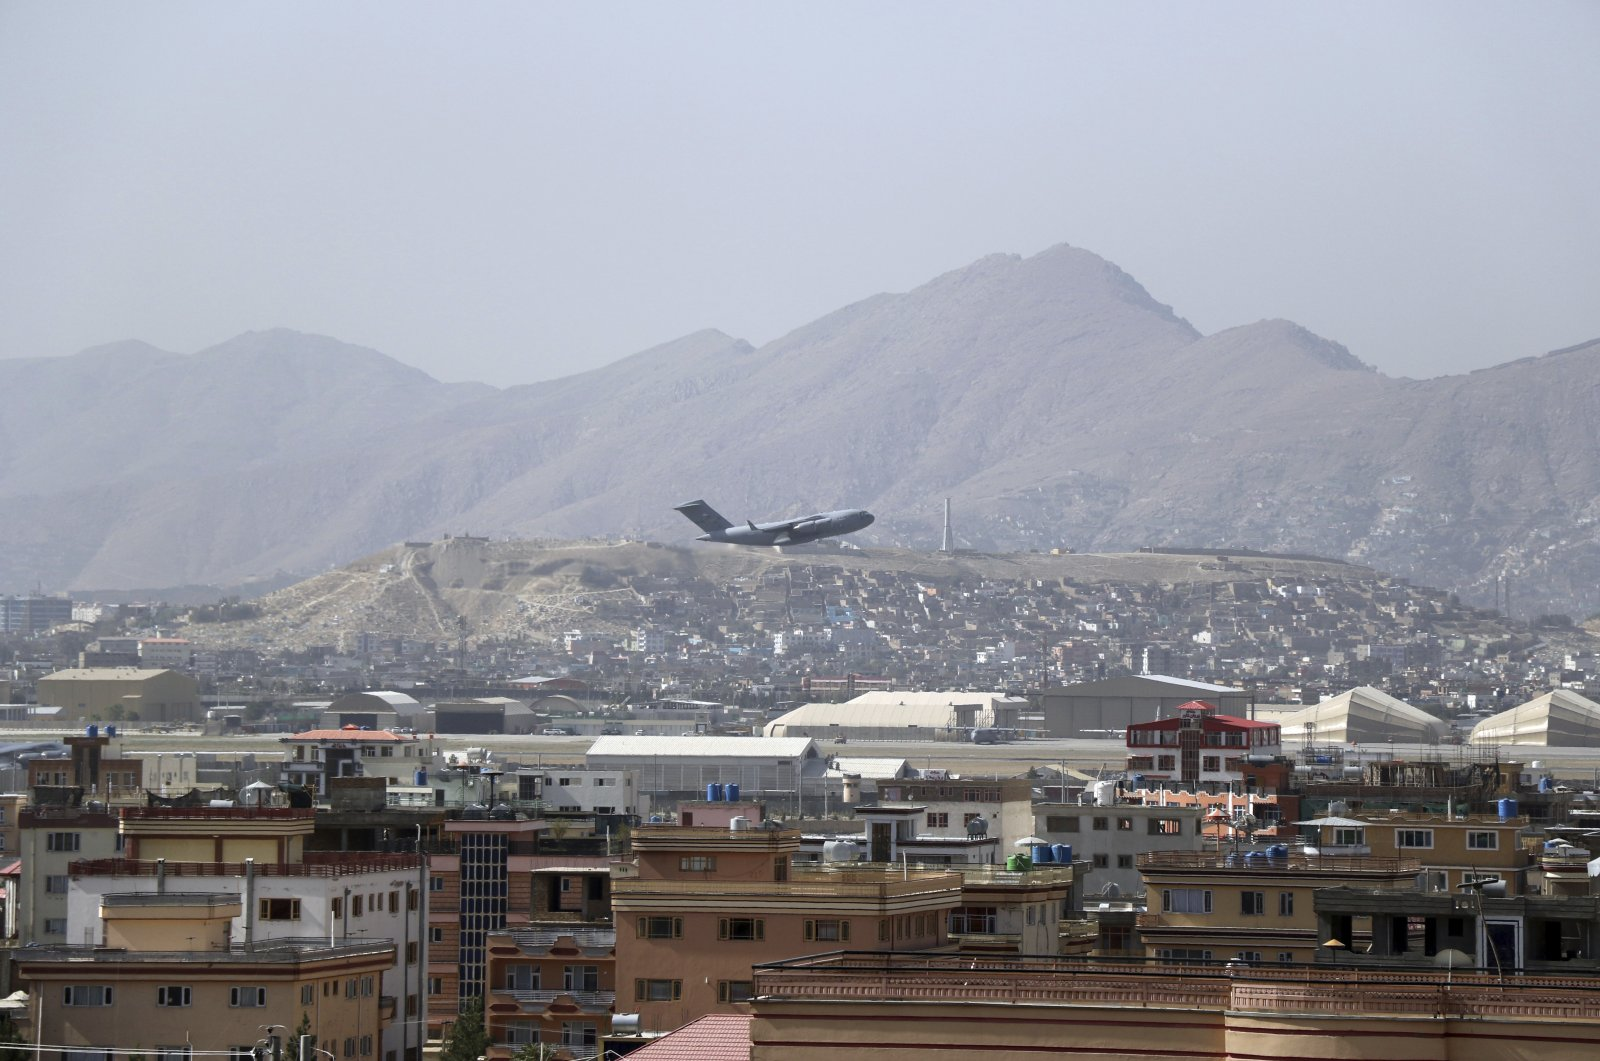 A U.S. military aircraft takes off from Hamid Karzai International Airport in Kabul, Afghanistan, Aug. 28, 2021. (AP Photo)